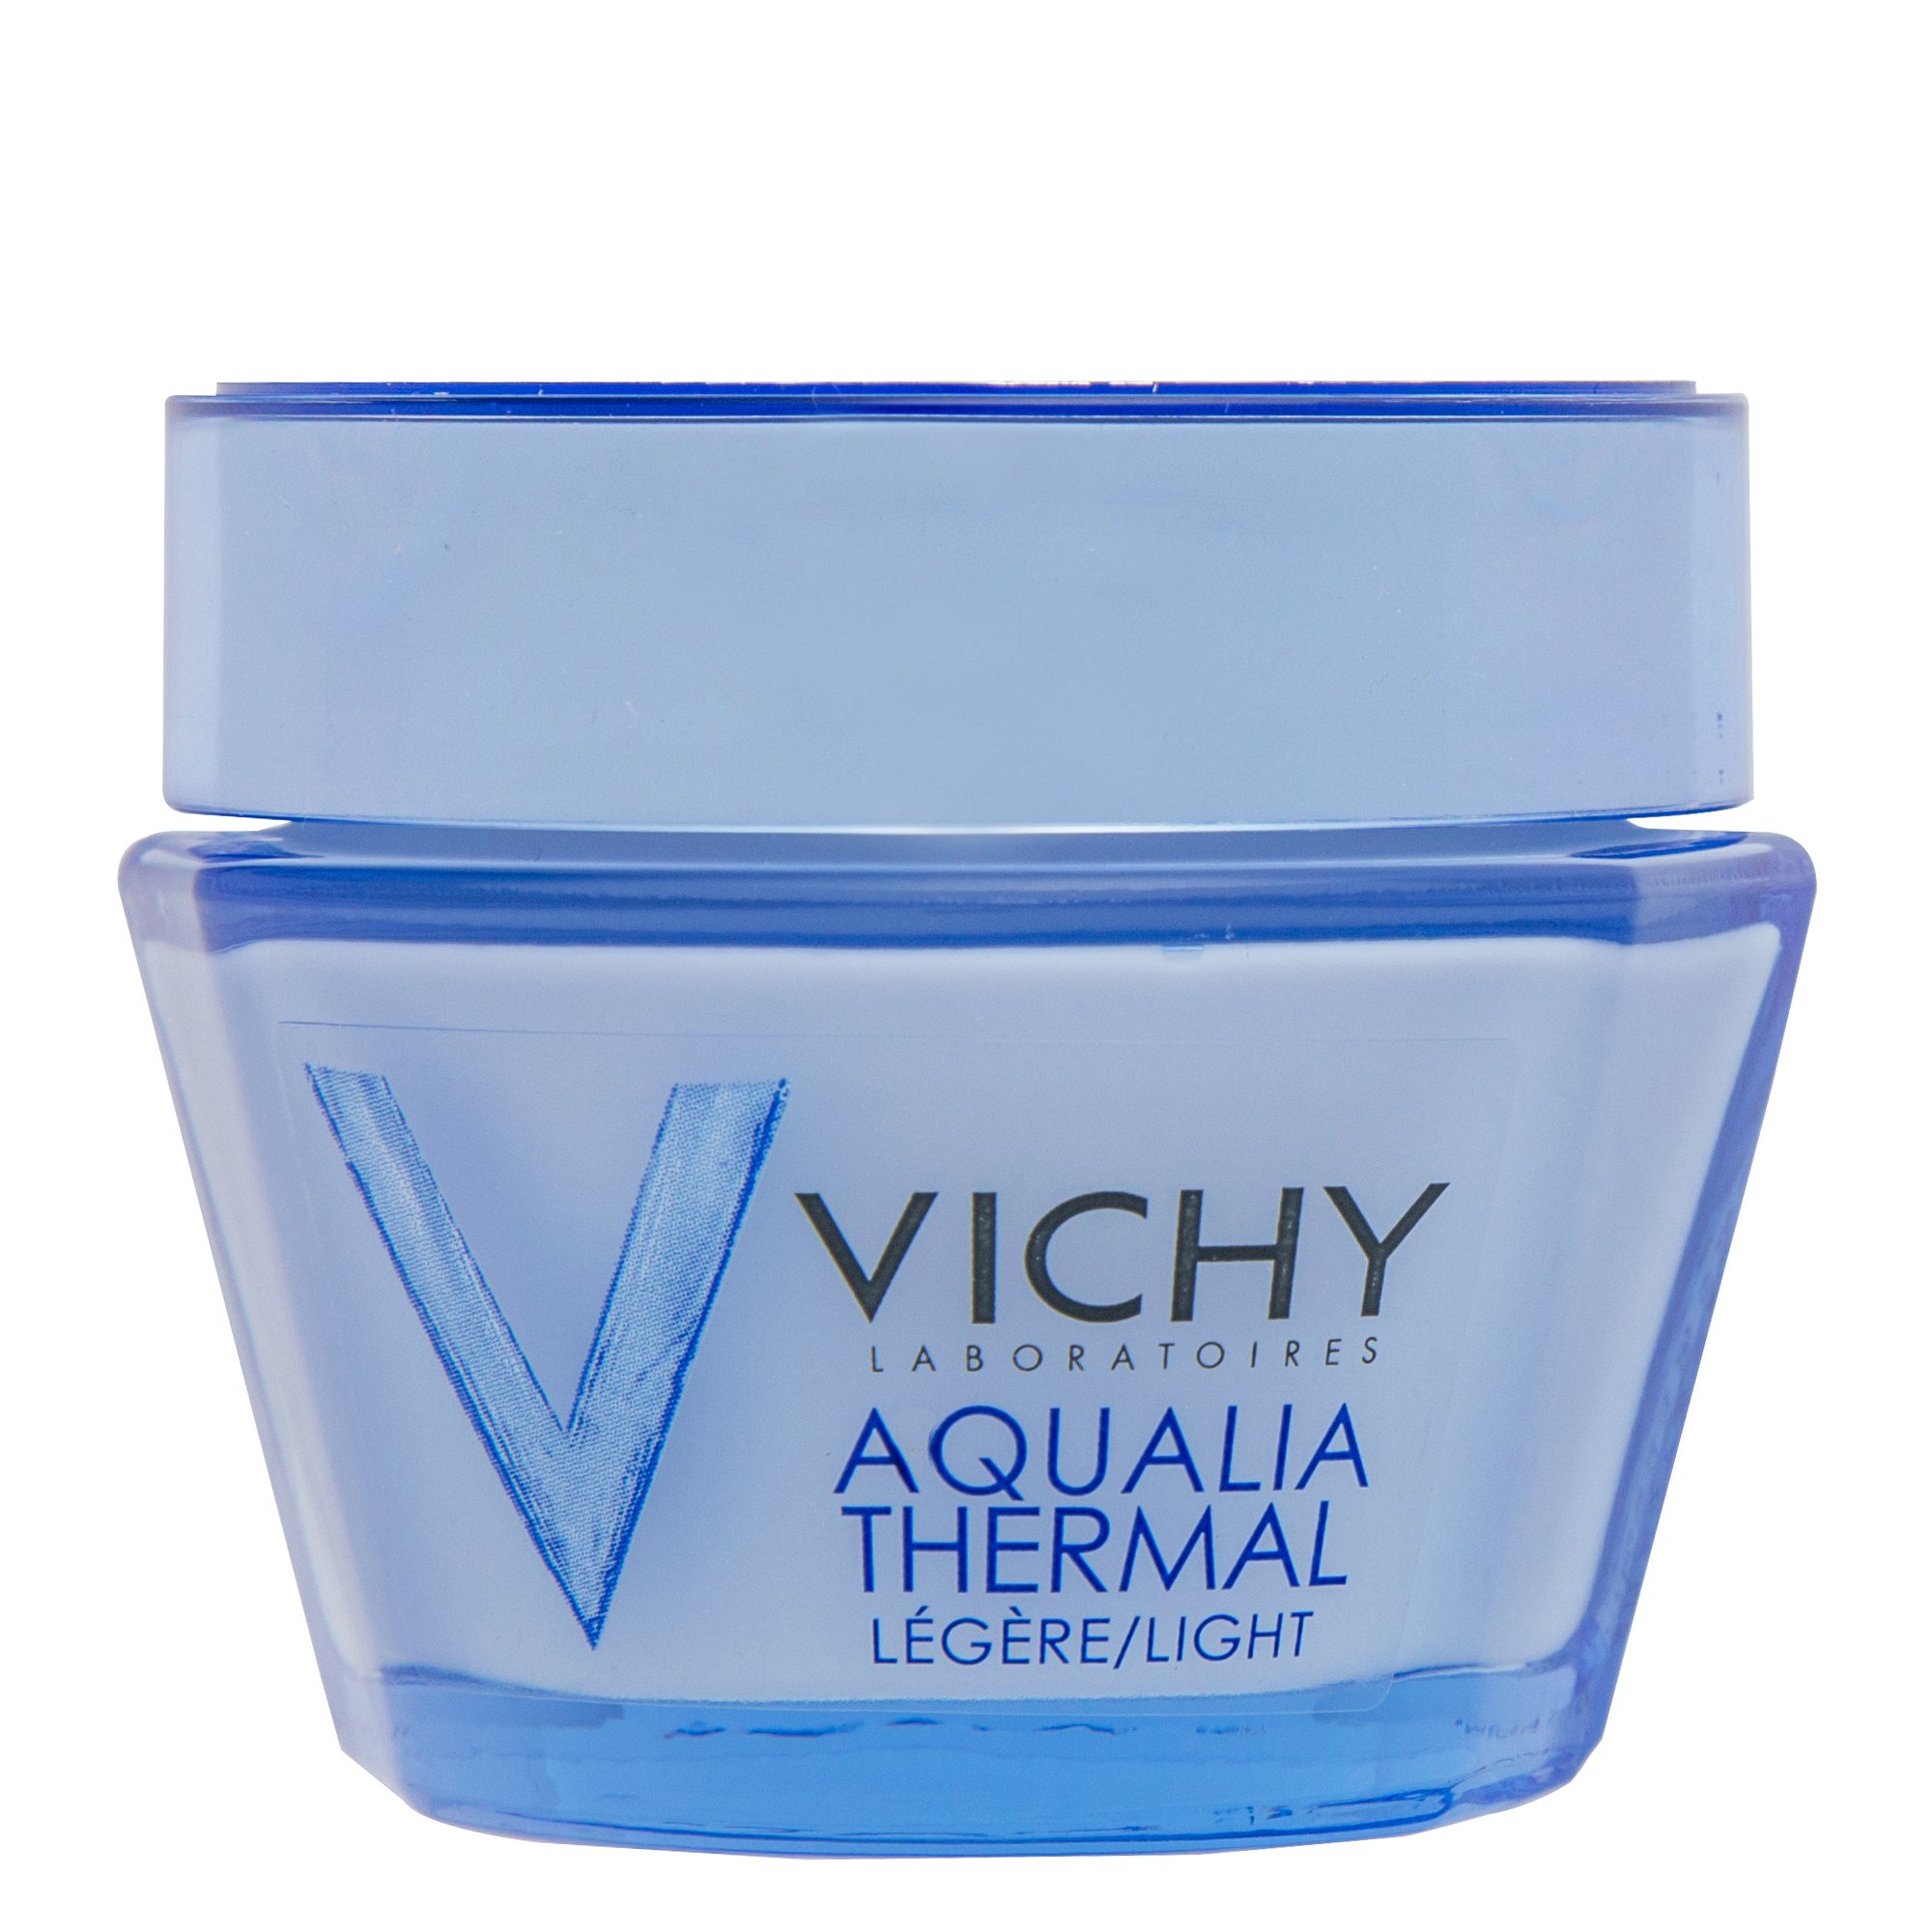 Vichy Aqualia Thermal Legere